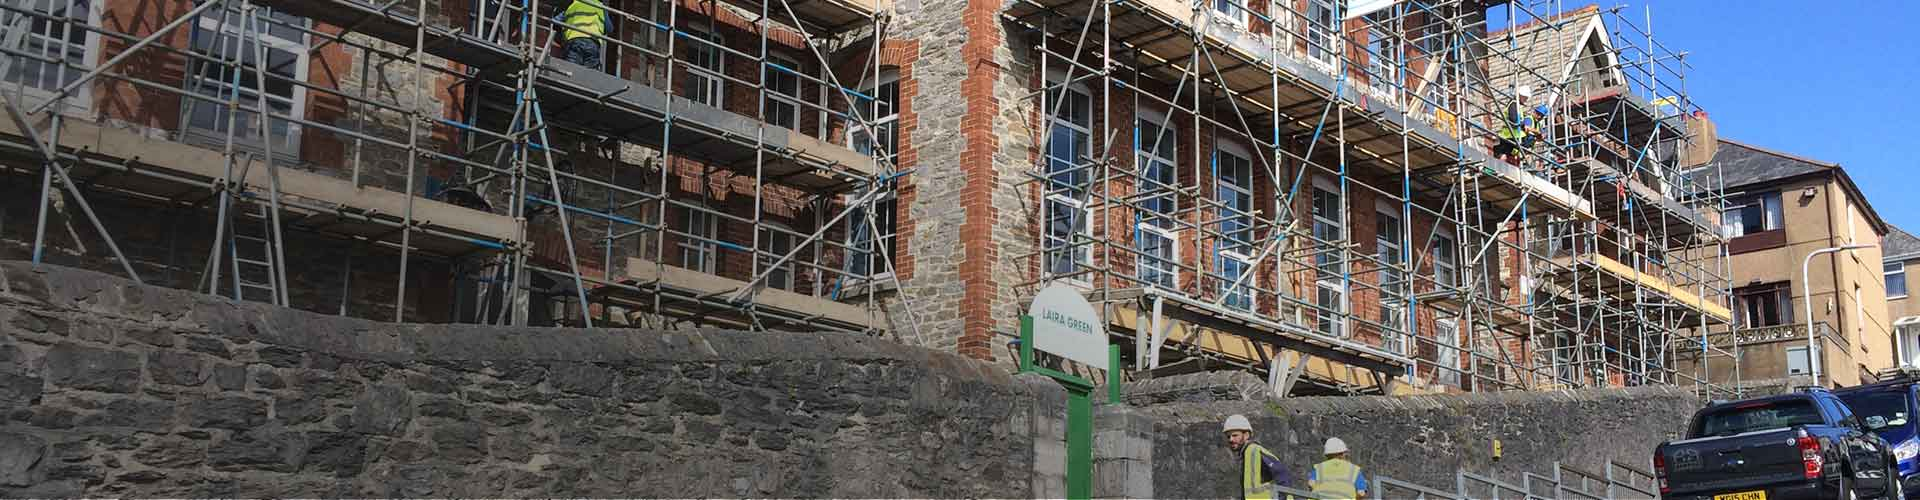 laria green scaffold projects A&A concrete repairs